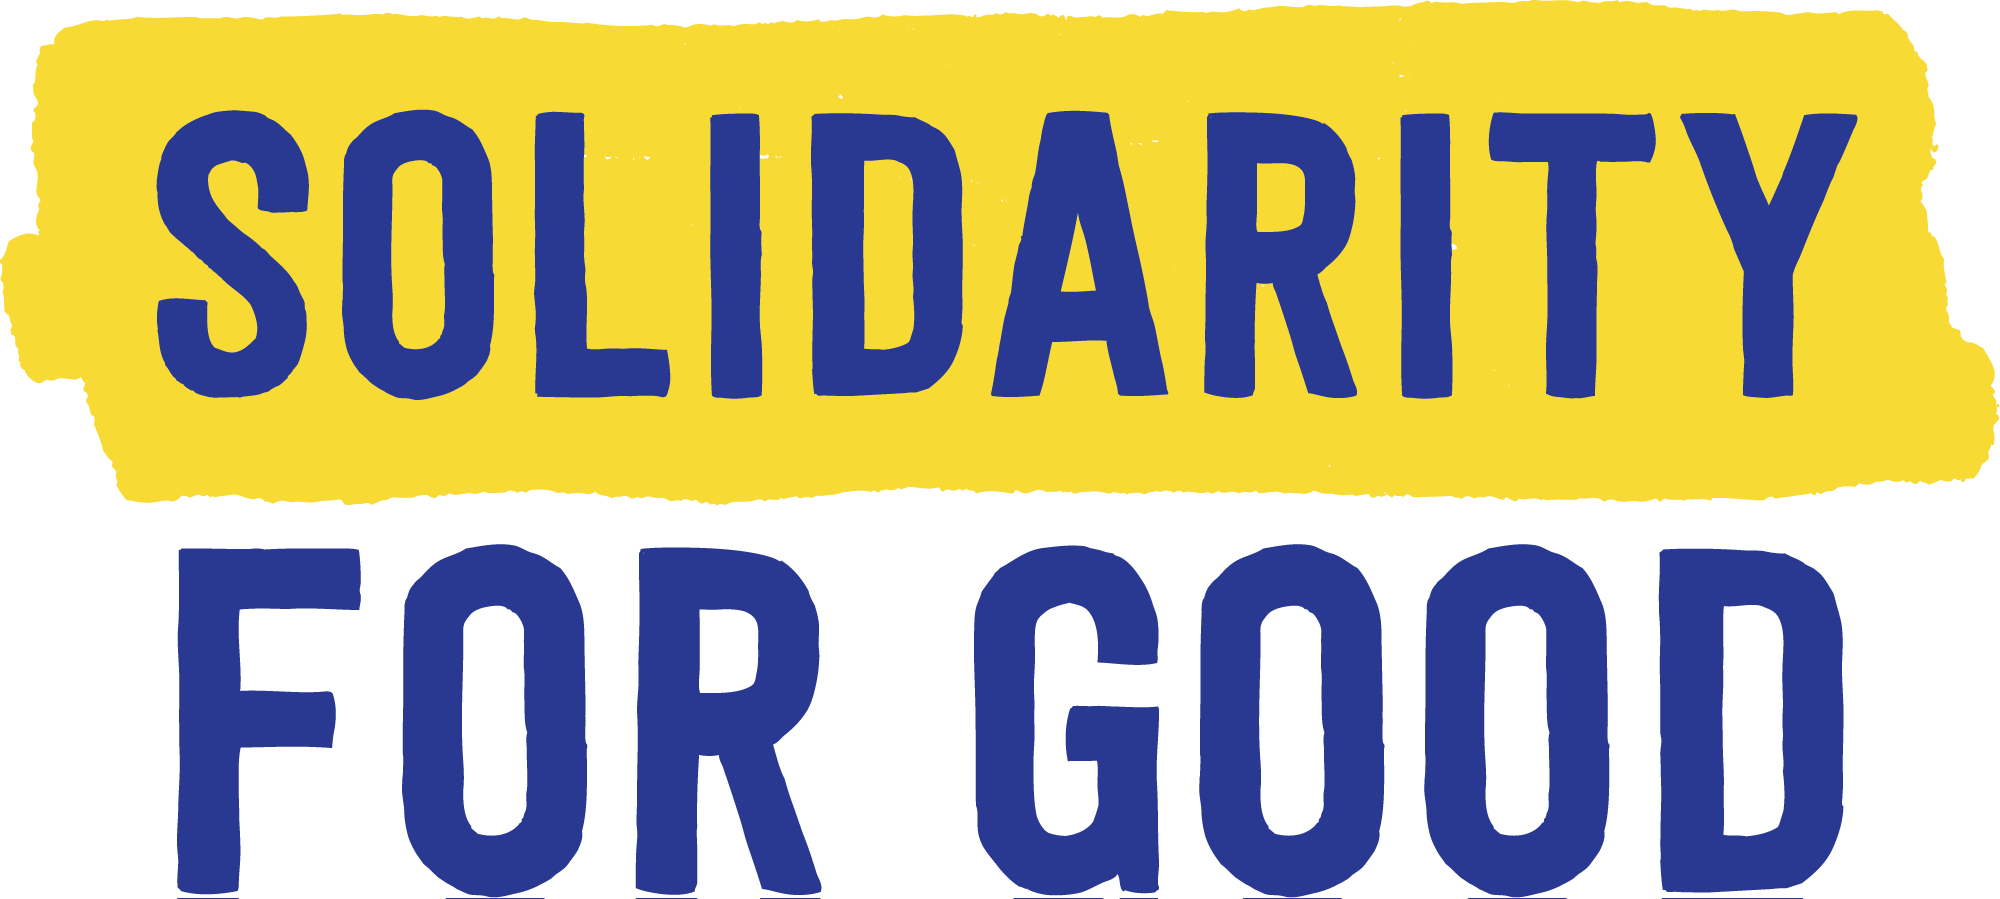 solidarity-for-good-for-light-bground (002).png